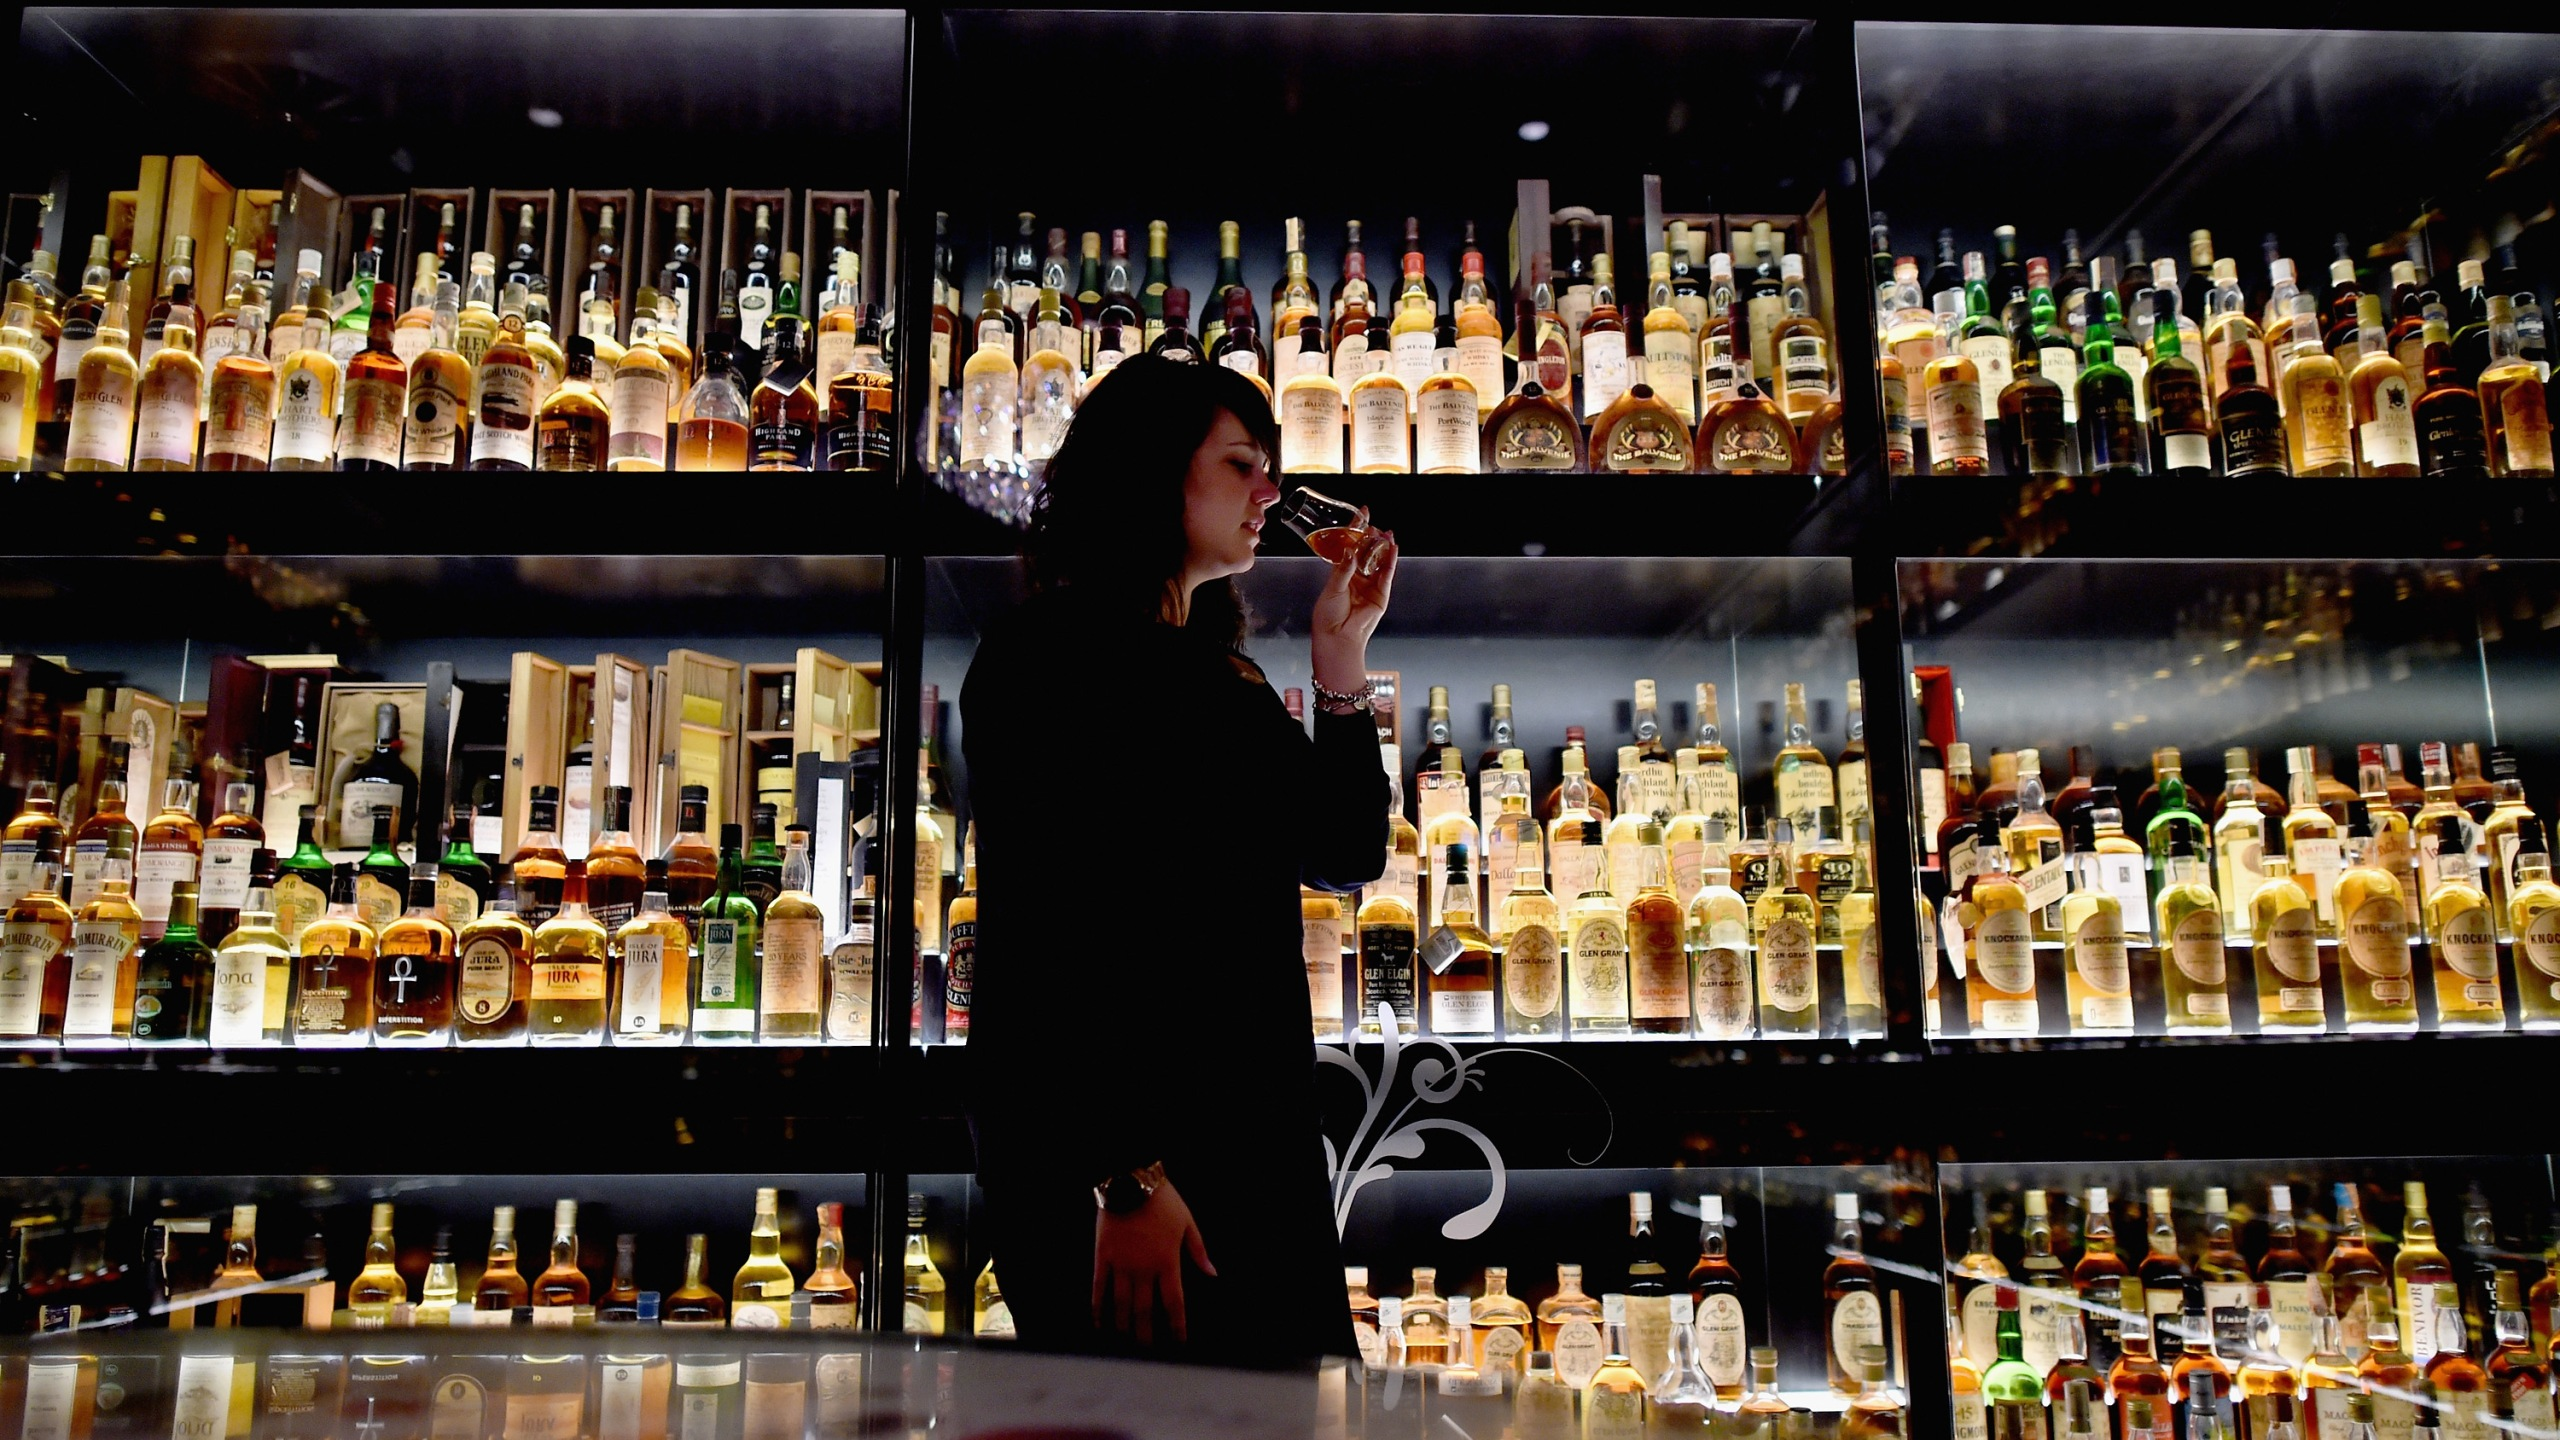 Members of the public examine whisky samples inside the Diageo Claive Vidiz Collection, the world's largest collection of Scottish Whisky, on display at The Scotch Whisky Experience on Sept. 3, 2015, in Edinburgh. (Credit: Jeff J. Mitchell / Getty Images)